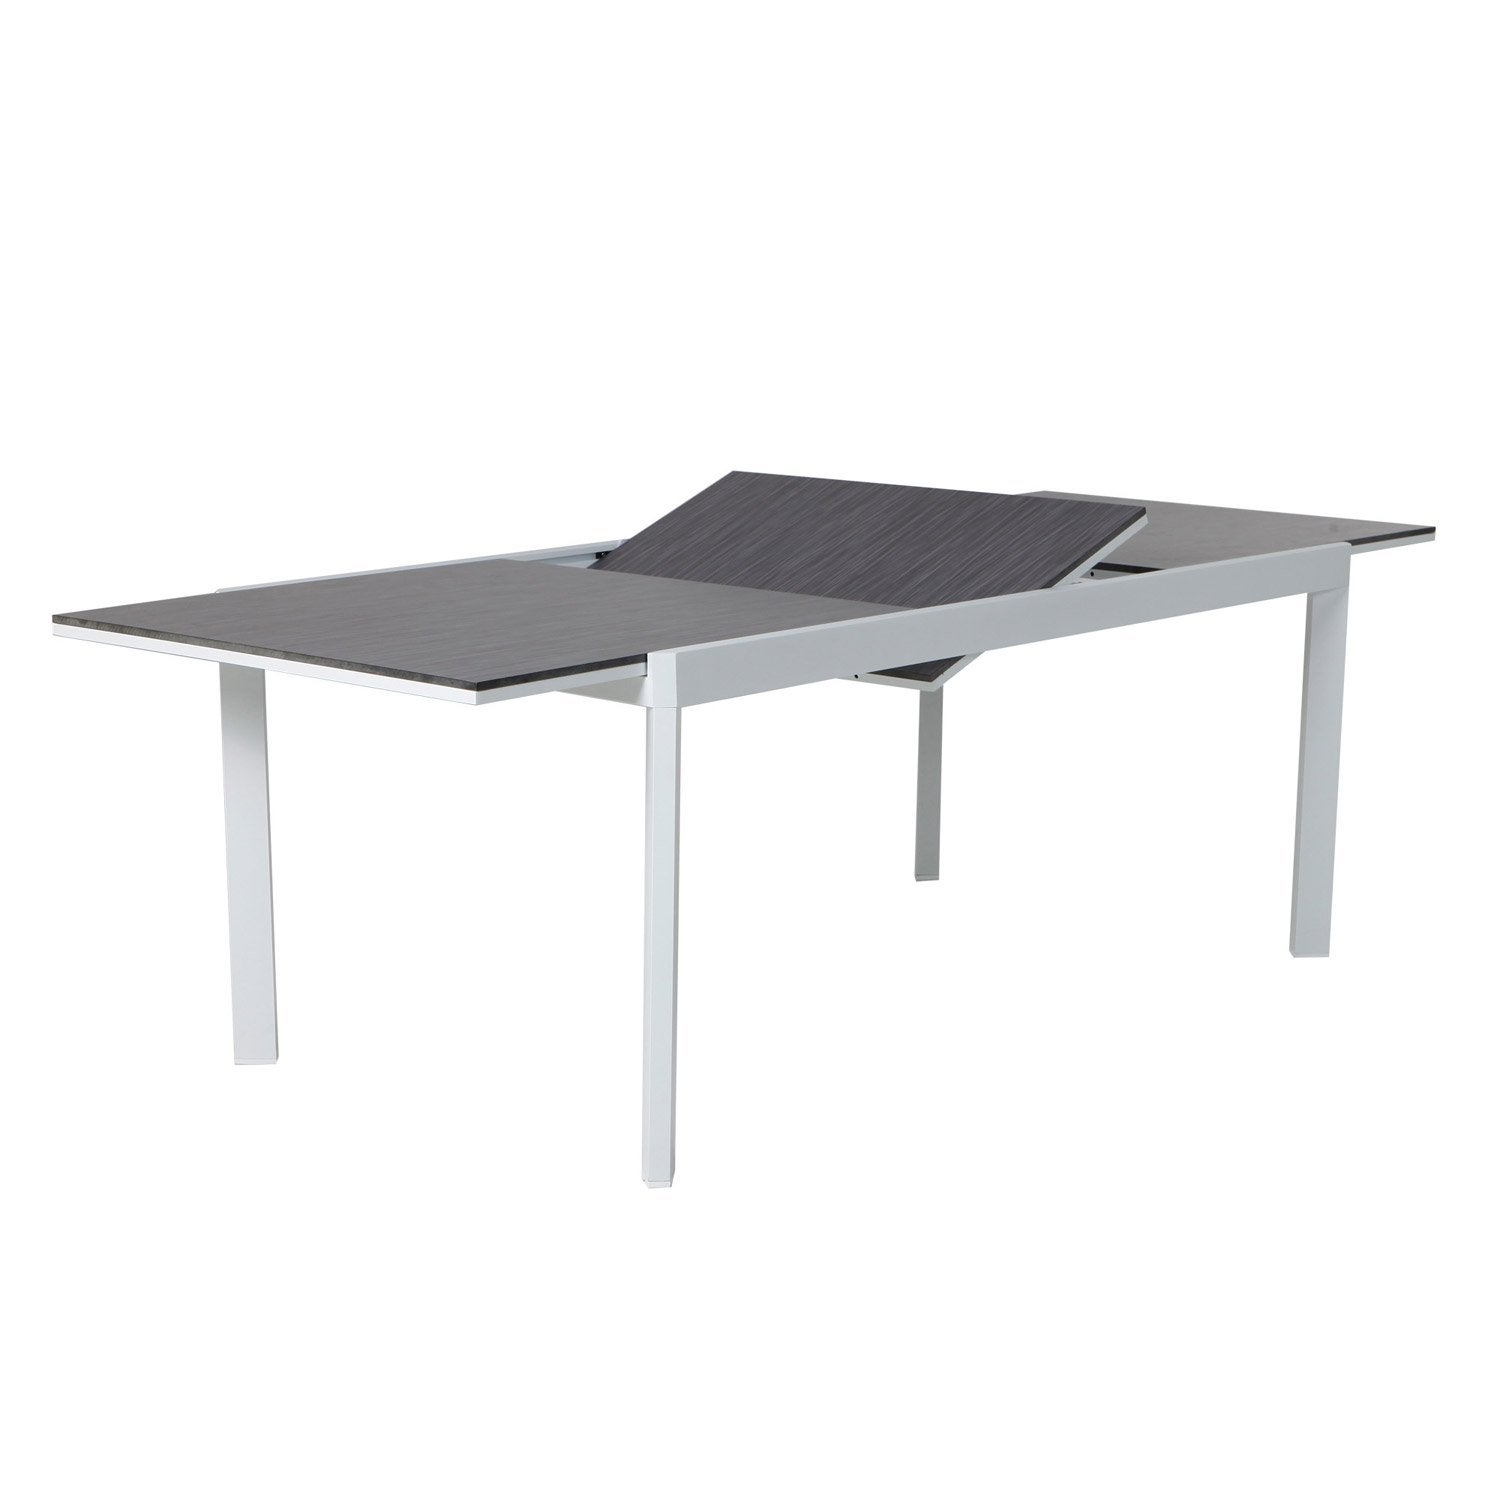 Table De Jardin Naterial Marbella Rectangulaire Gris 6